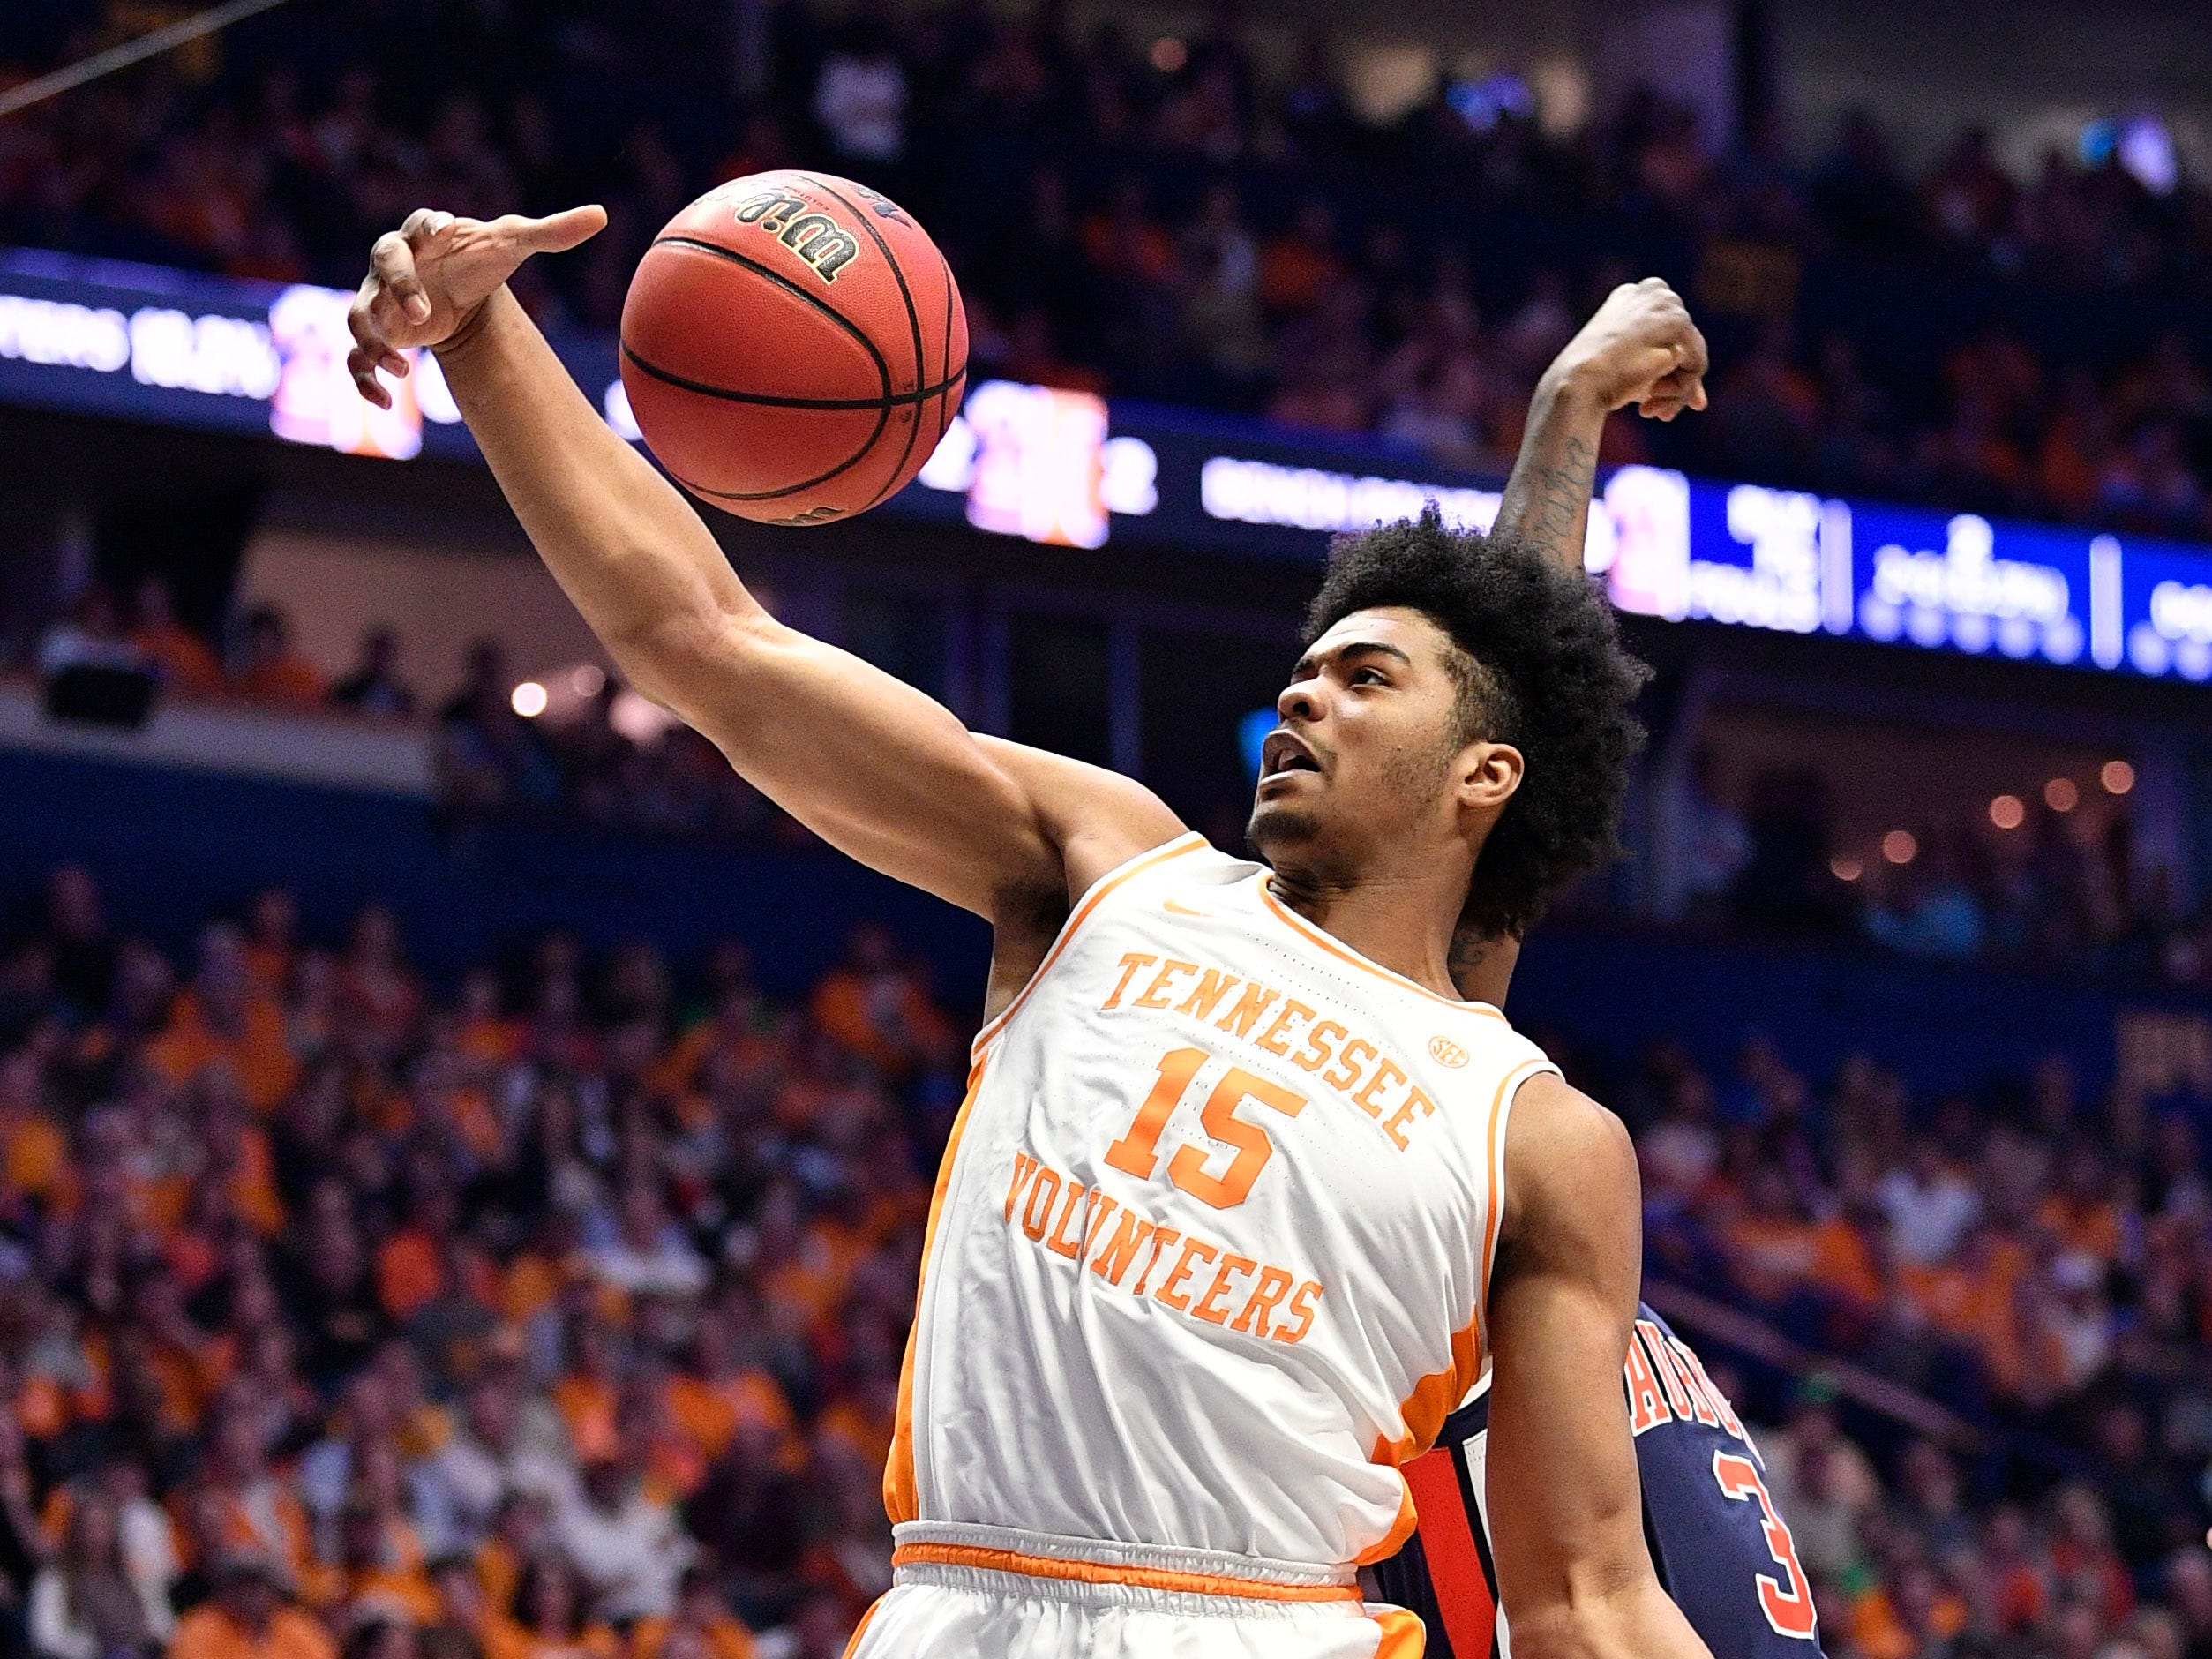 Tennessee forward Derrick Walker (15) grabs a rebound during the first half of the SEC Men's Basketball Tournament championship game at Bridgestone Arena in Nashville, Tenn., Sunday, March 17, 2019.